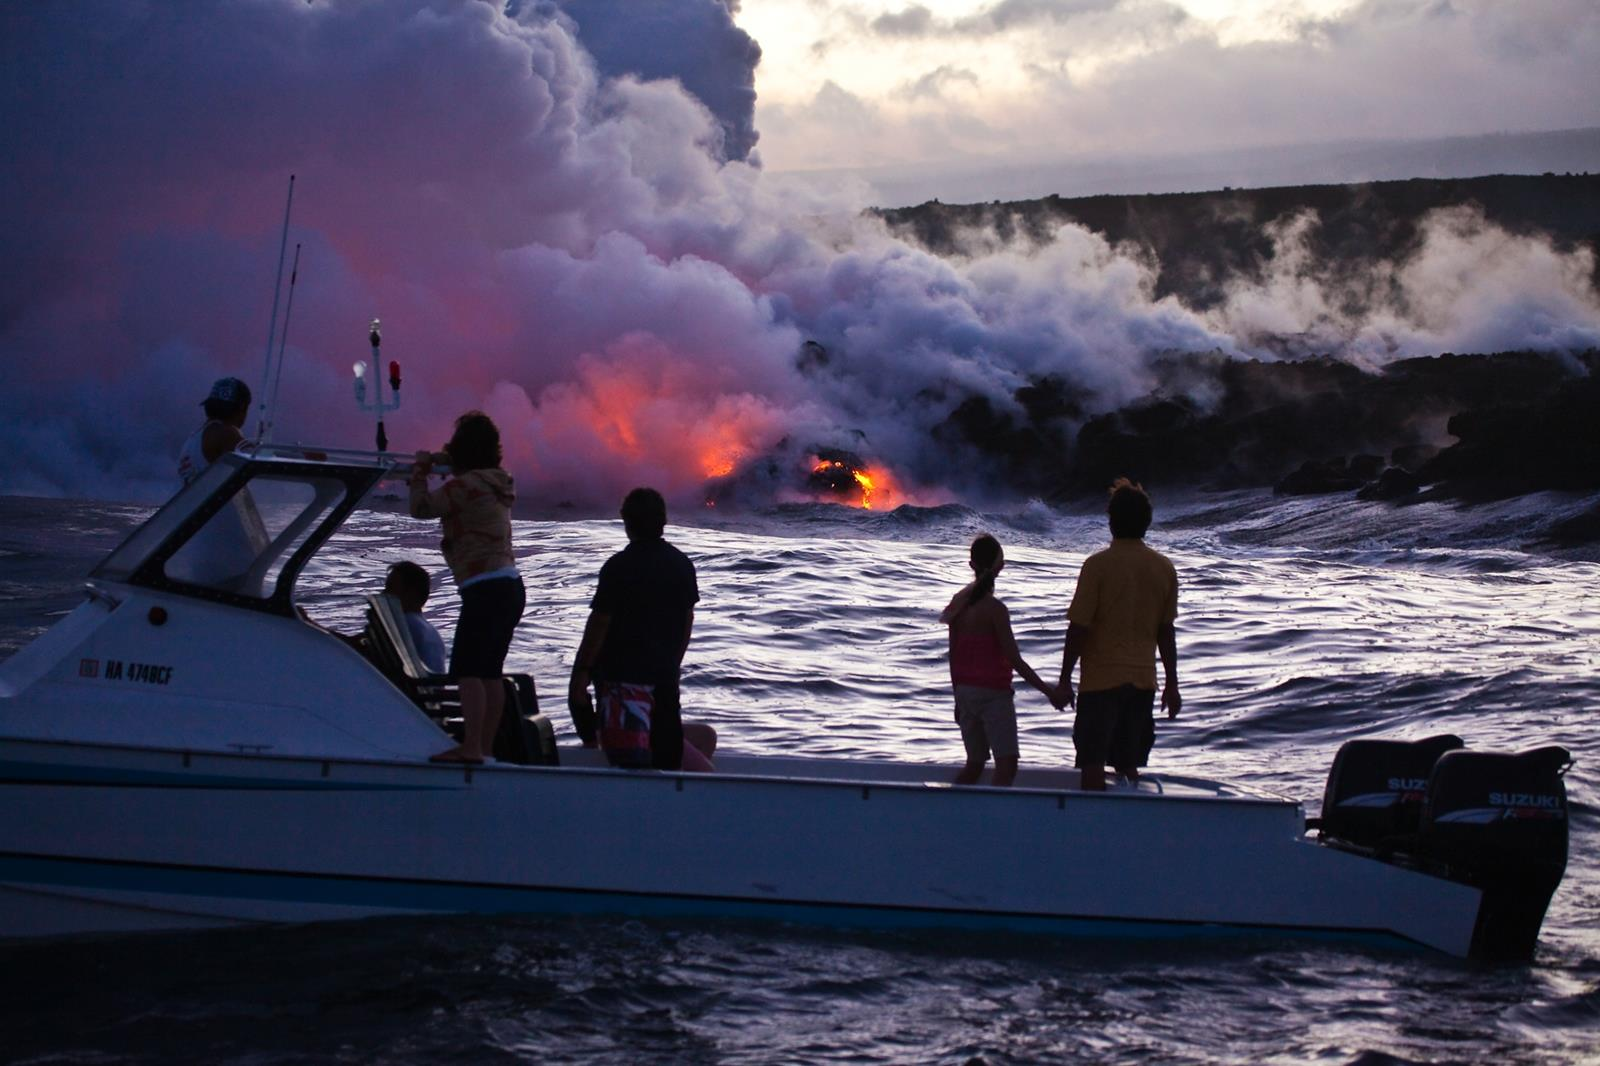 Boaters watching lava enter the ocean at Hawaii Volcanoes National Park. Credit: Hawaii Tourism Authority (HTA)/Tor Johnson Island.